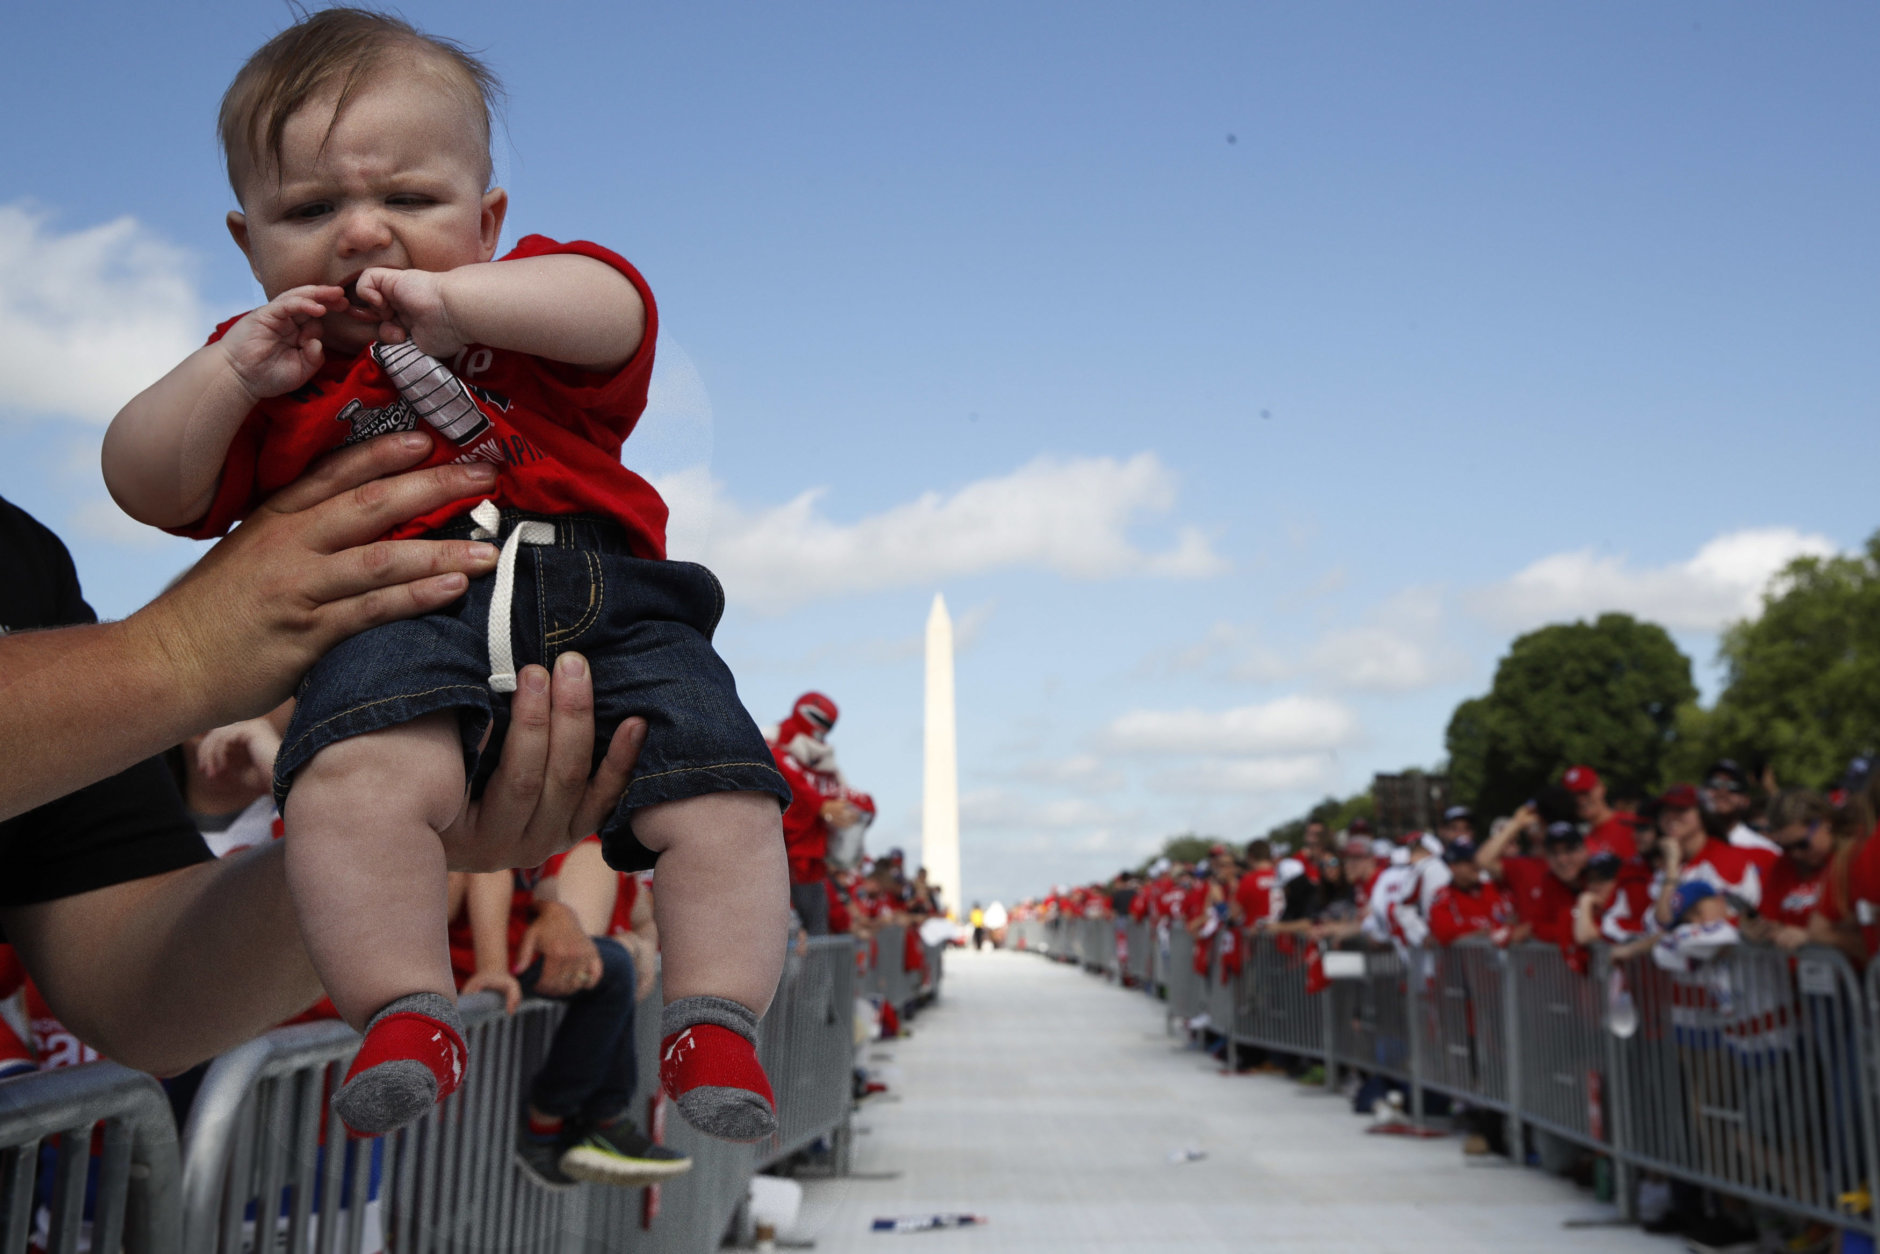 Four-month-old hockey fan C.J. Ford, of Elliott City, Md., is held up by his father as fans line the National Mall ahead of a victory parade and rally for the Washington Capitals in celebration of winning the Stanley Cup, Tuesday, June 12, 2018, in Washington. The baby has already been to eleven games as his parents are season ticket holders. (AP Photo/Jacquelyn Martin)